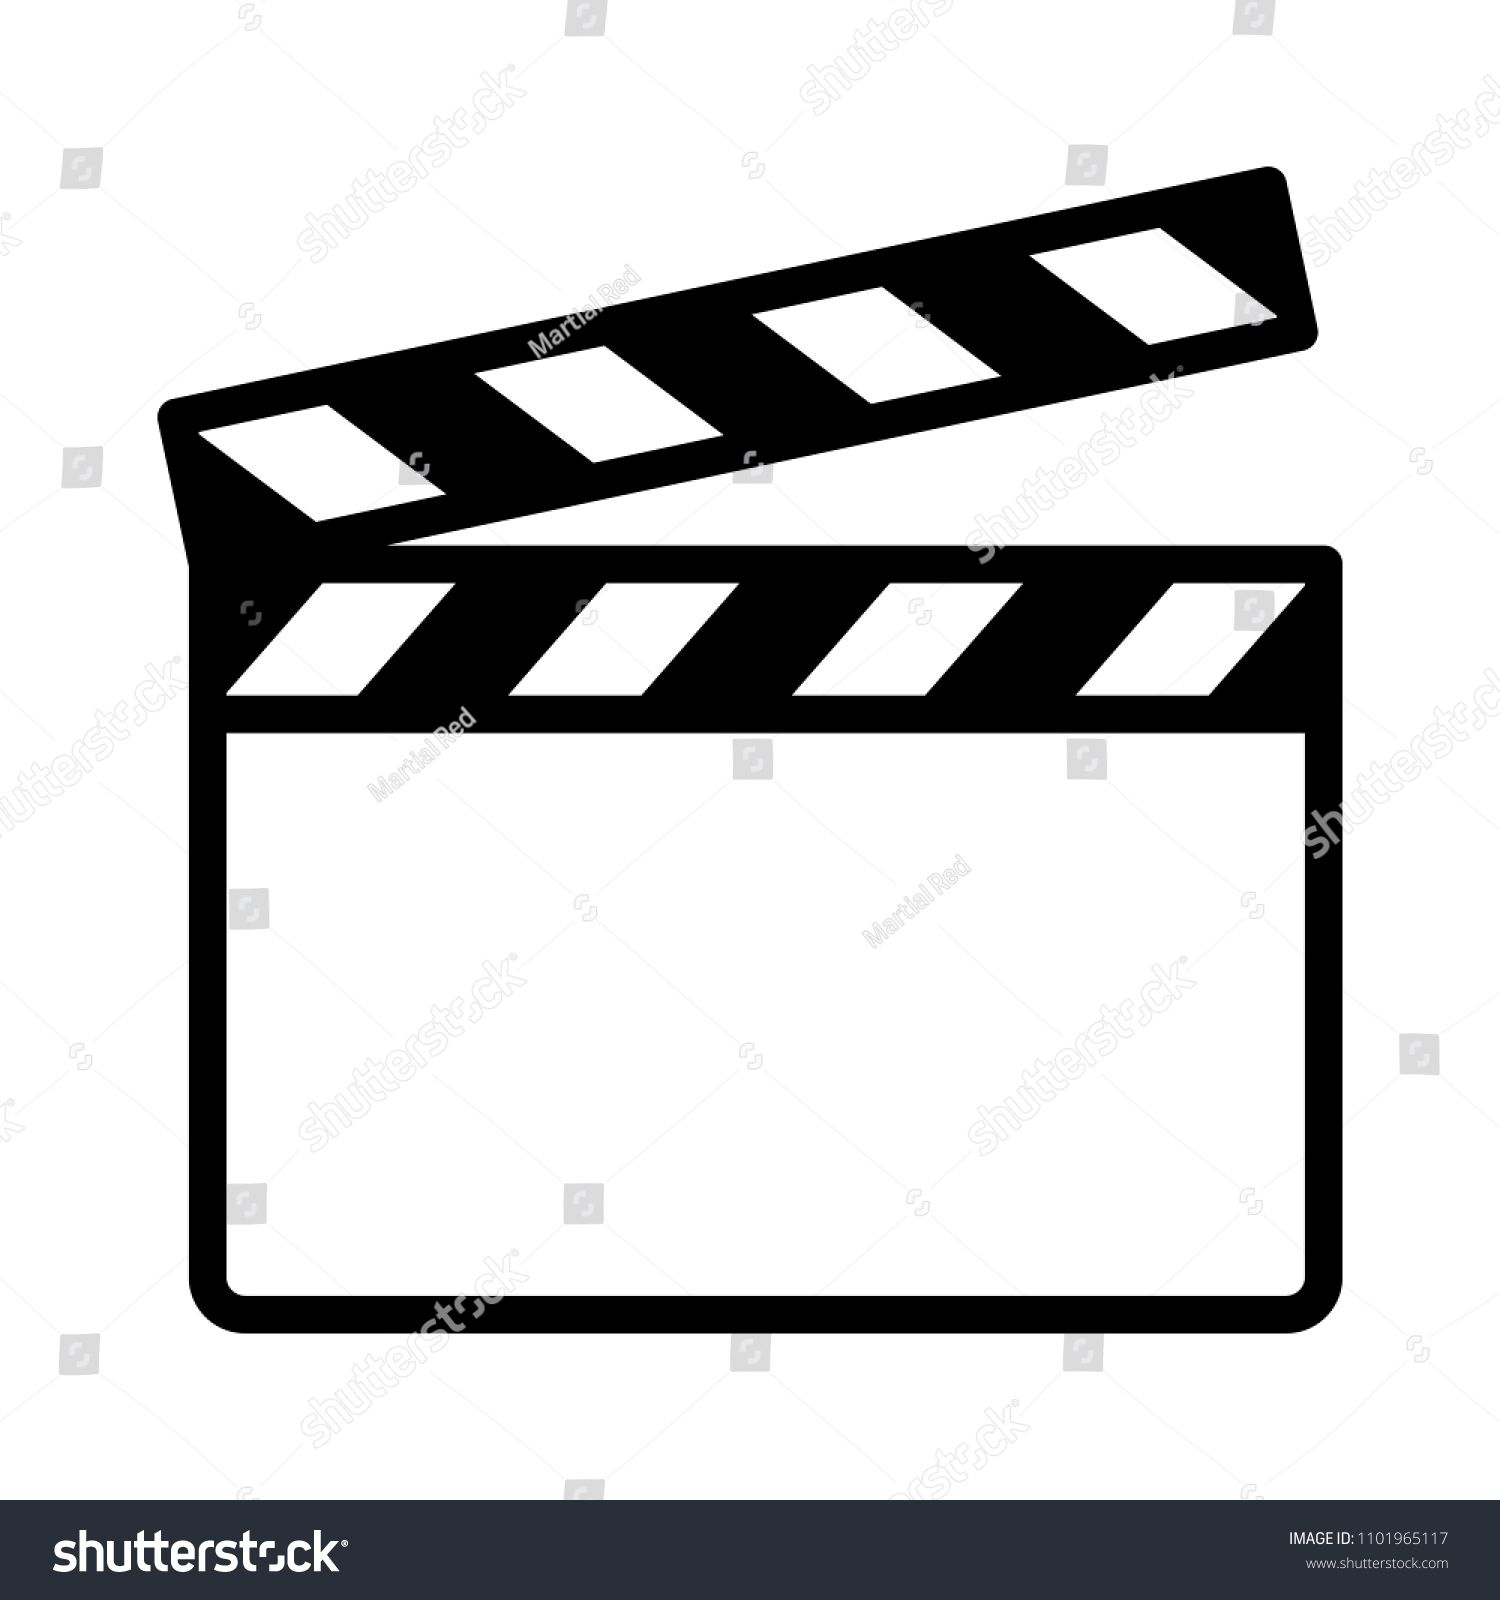 Movie Clapperboard Or Film Clapboard Line Art Vector Icon For Video Apps And Websites Ad Affiliate Clapboard Line Film Movie Line Art Vector Line Art Art